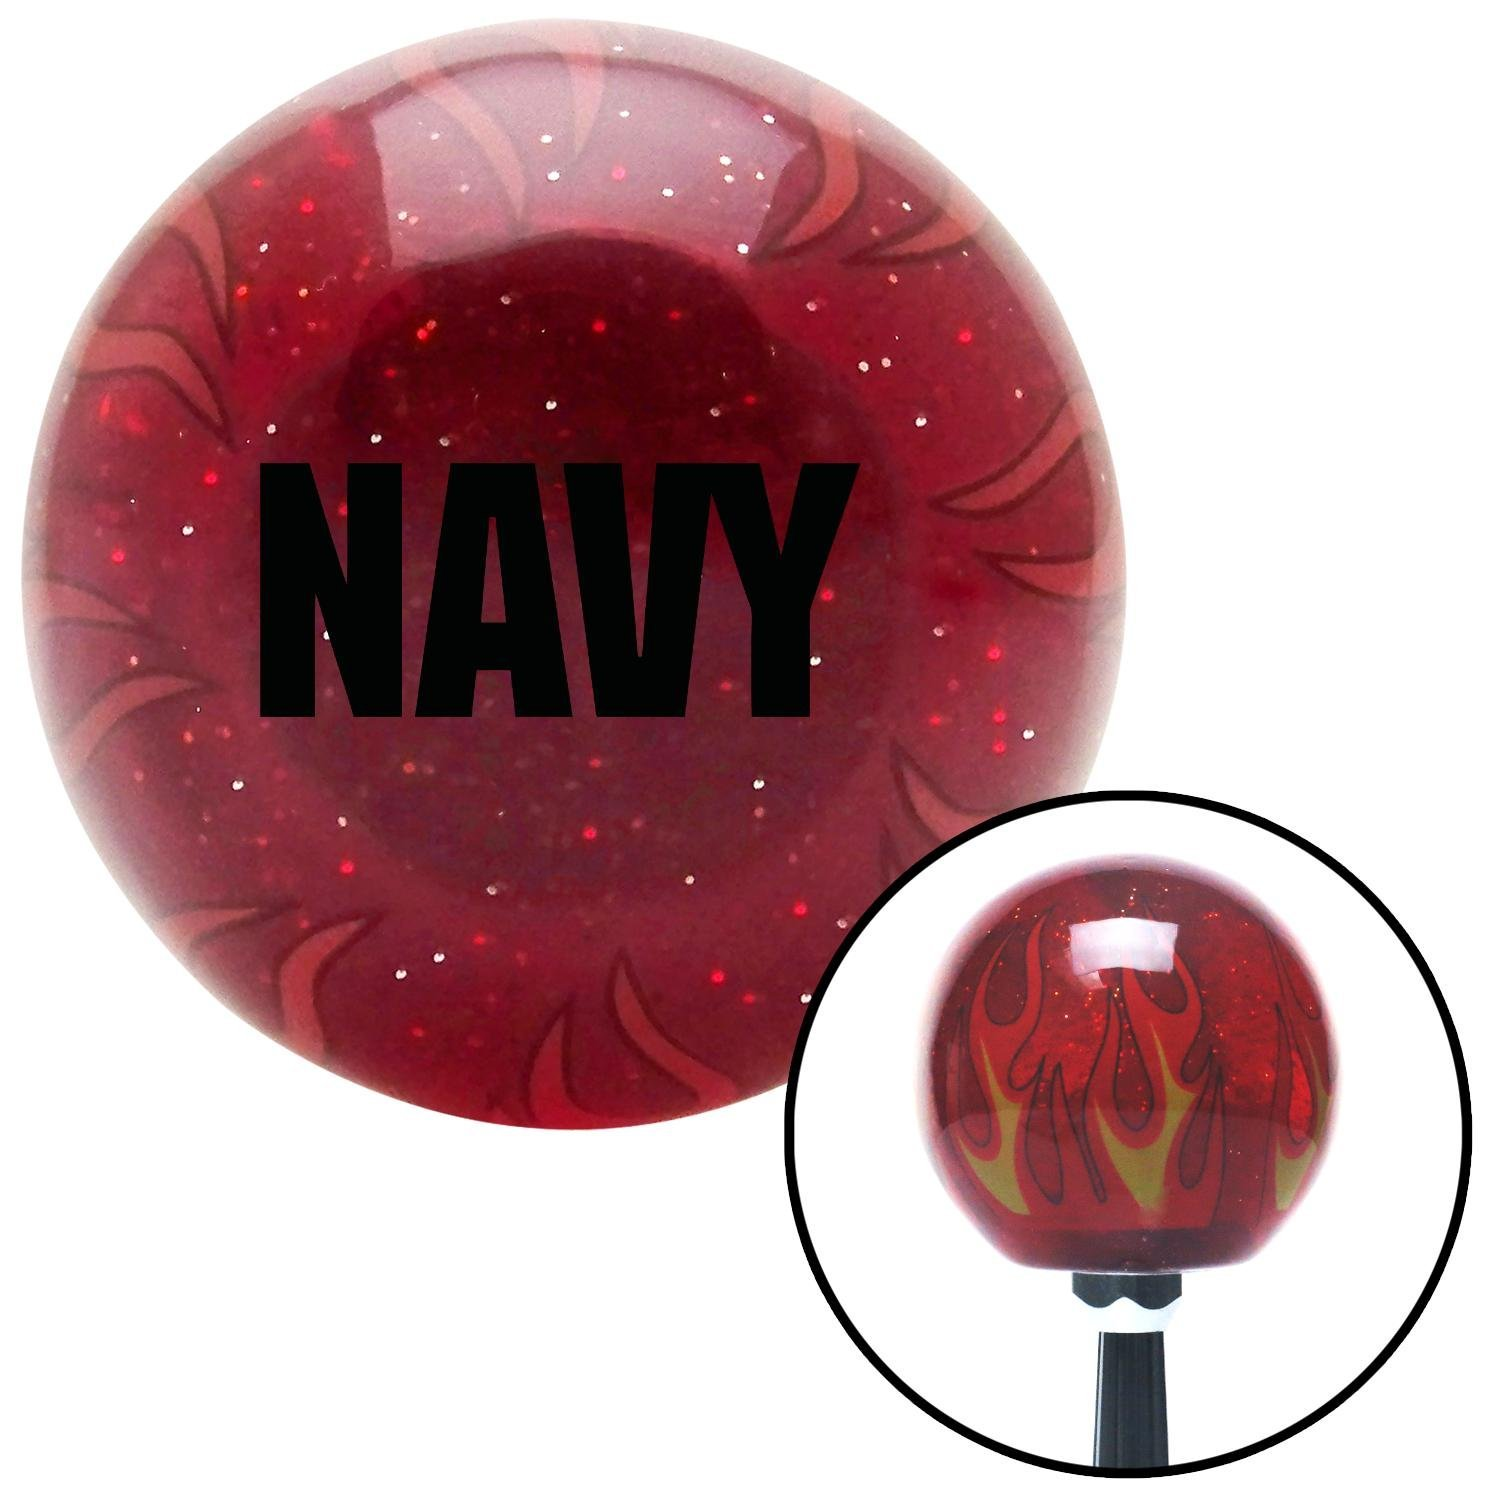 Black Navy American Shifter 241112 Red Flame Metal Flake Shift Knob with M16 x 1.5 Insert